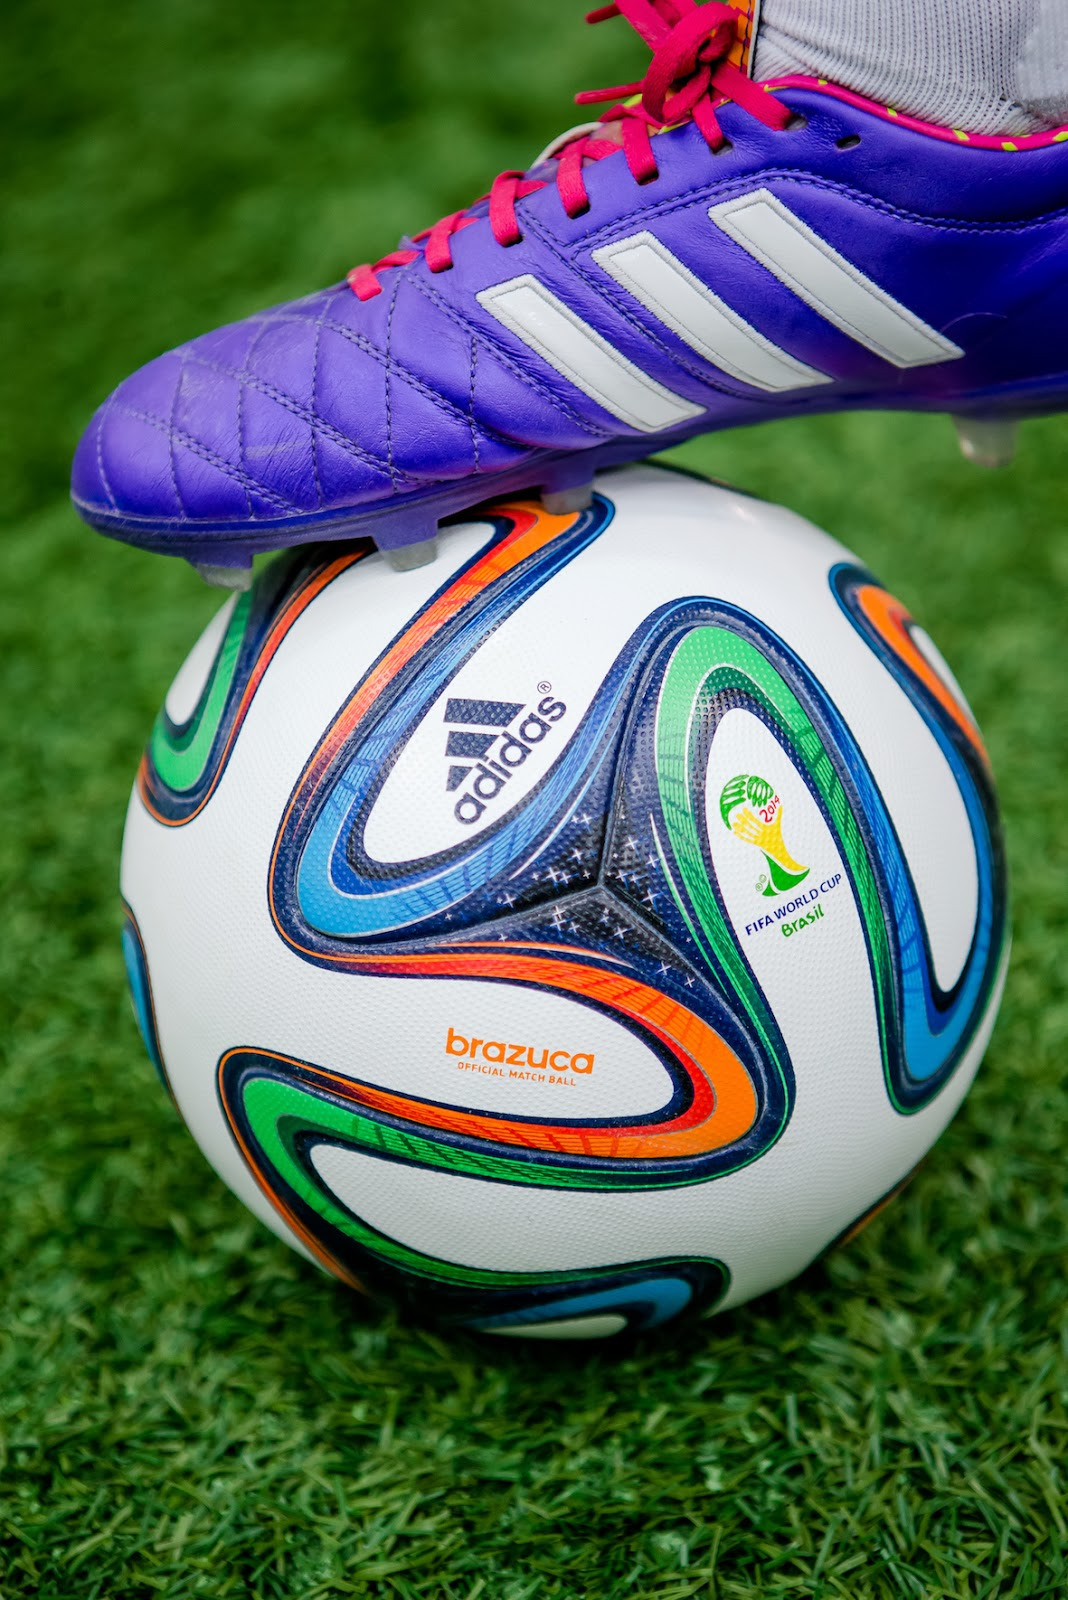 competitive price 91149 11f45 oOn 4th December 2013 adidas unveiled brazuca, the official 2014 FIFA World  Cup Brazil™ match ball. The ball was revealed with a spectacular 3D light  ...